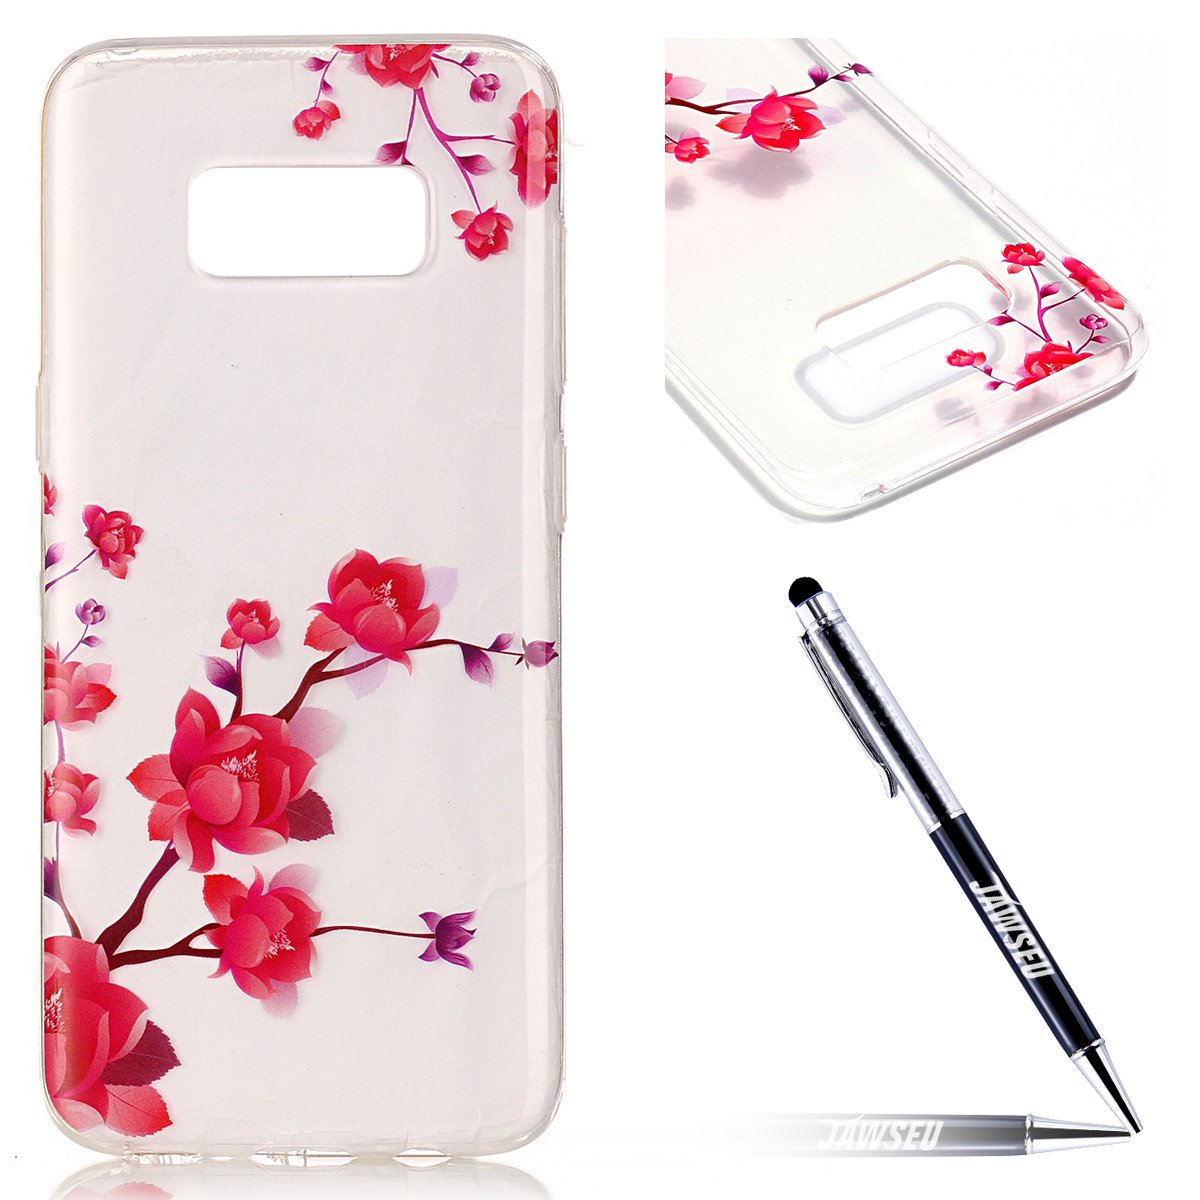 Custodia Cover Samsung Galaxy S8 Plus Transparente Samsung Galaxy S8 Plus Case, JAWSEU Creativo Disegno Antiurto Corpeture Cristallo Chiaro Case per Samsung Galaxy S8 Plus Super Sottile Case Custodia Cover per Samsung Galaxy S8 Plus Protettiva Shock-Absorp